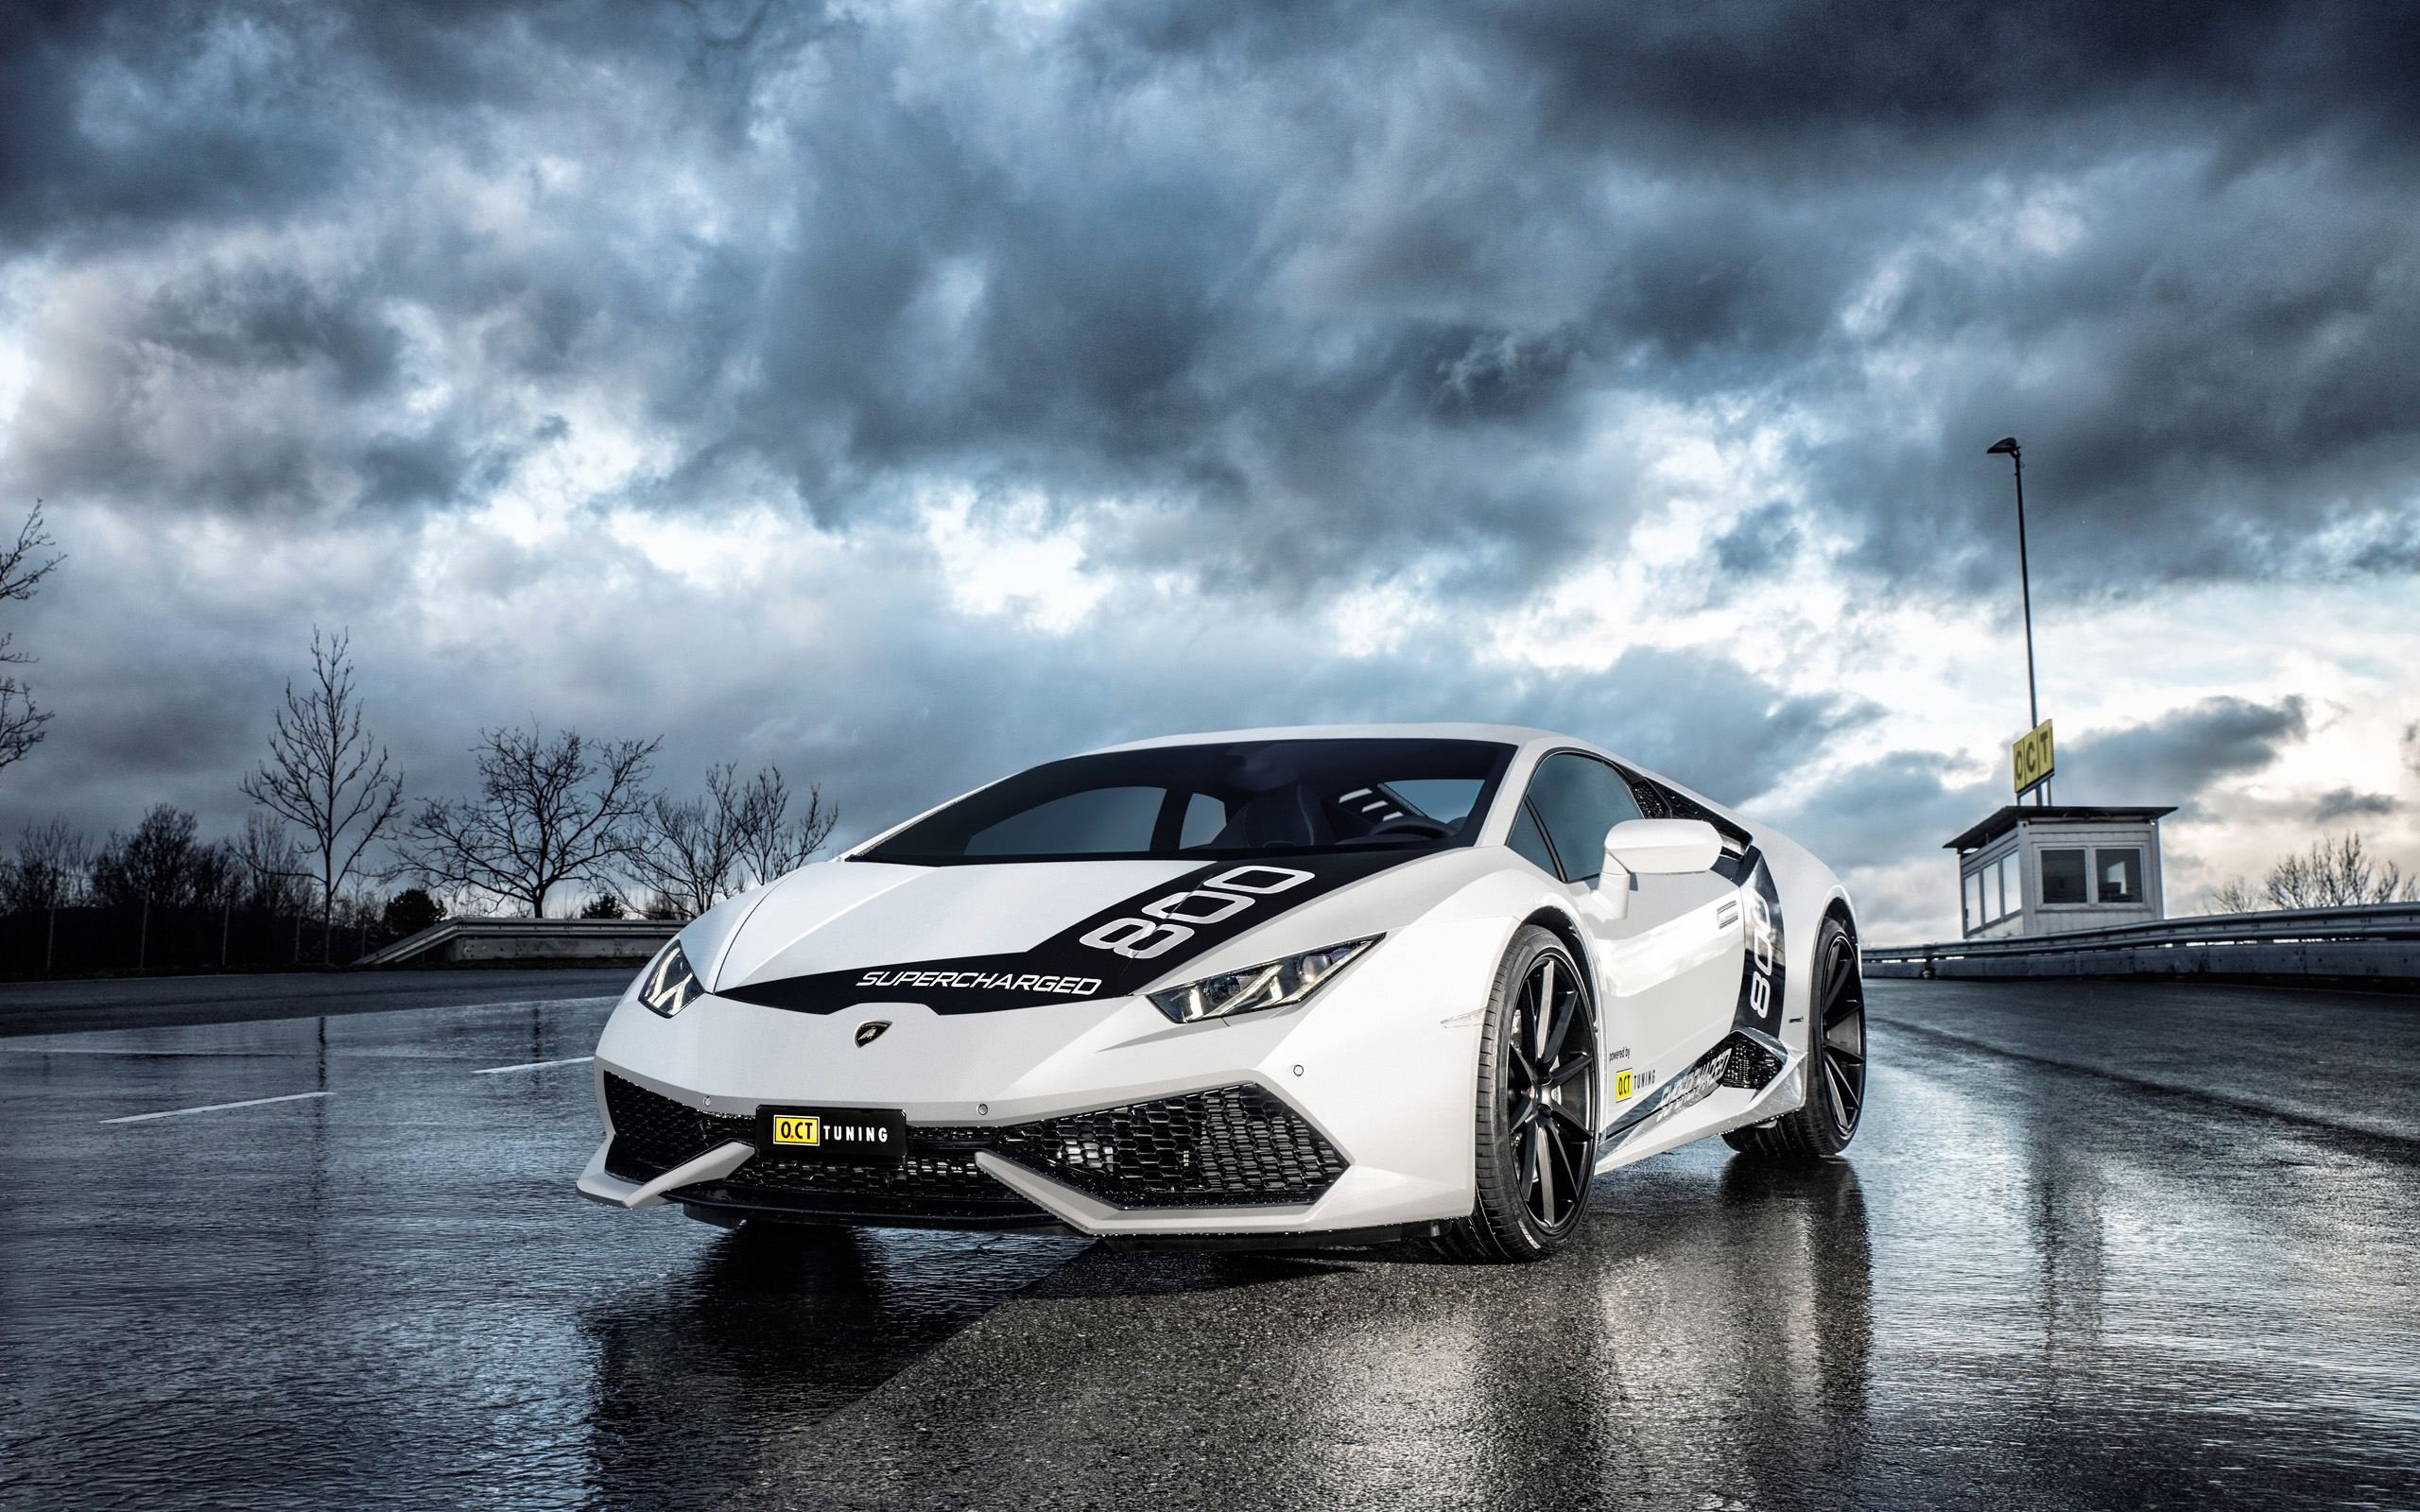 Sky Blue Lamborghini Wallpapers Posted By Sarah Simpson